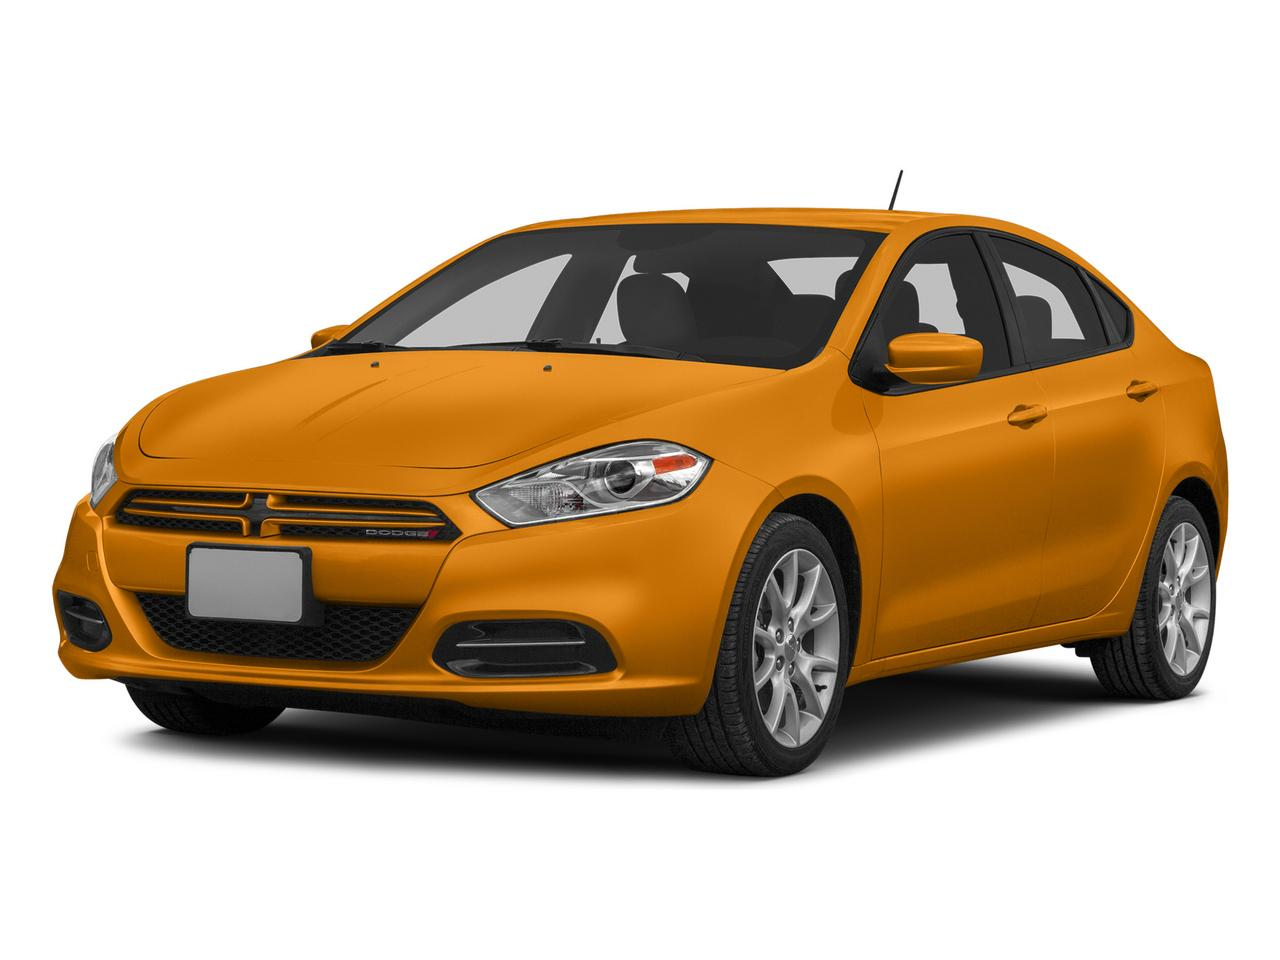 2015 Dodge Dart Vehicle Photo in Colorado Springs, CO 80905